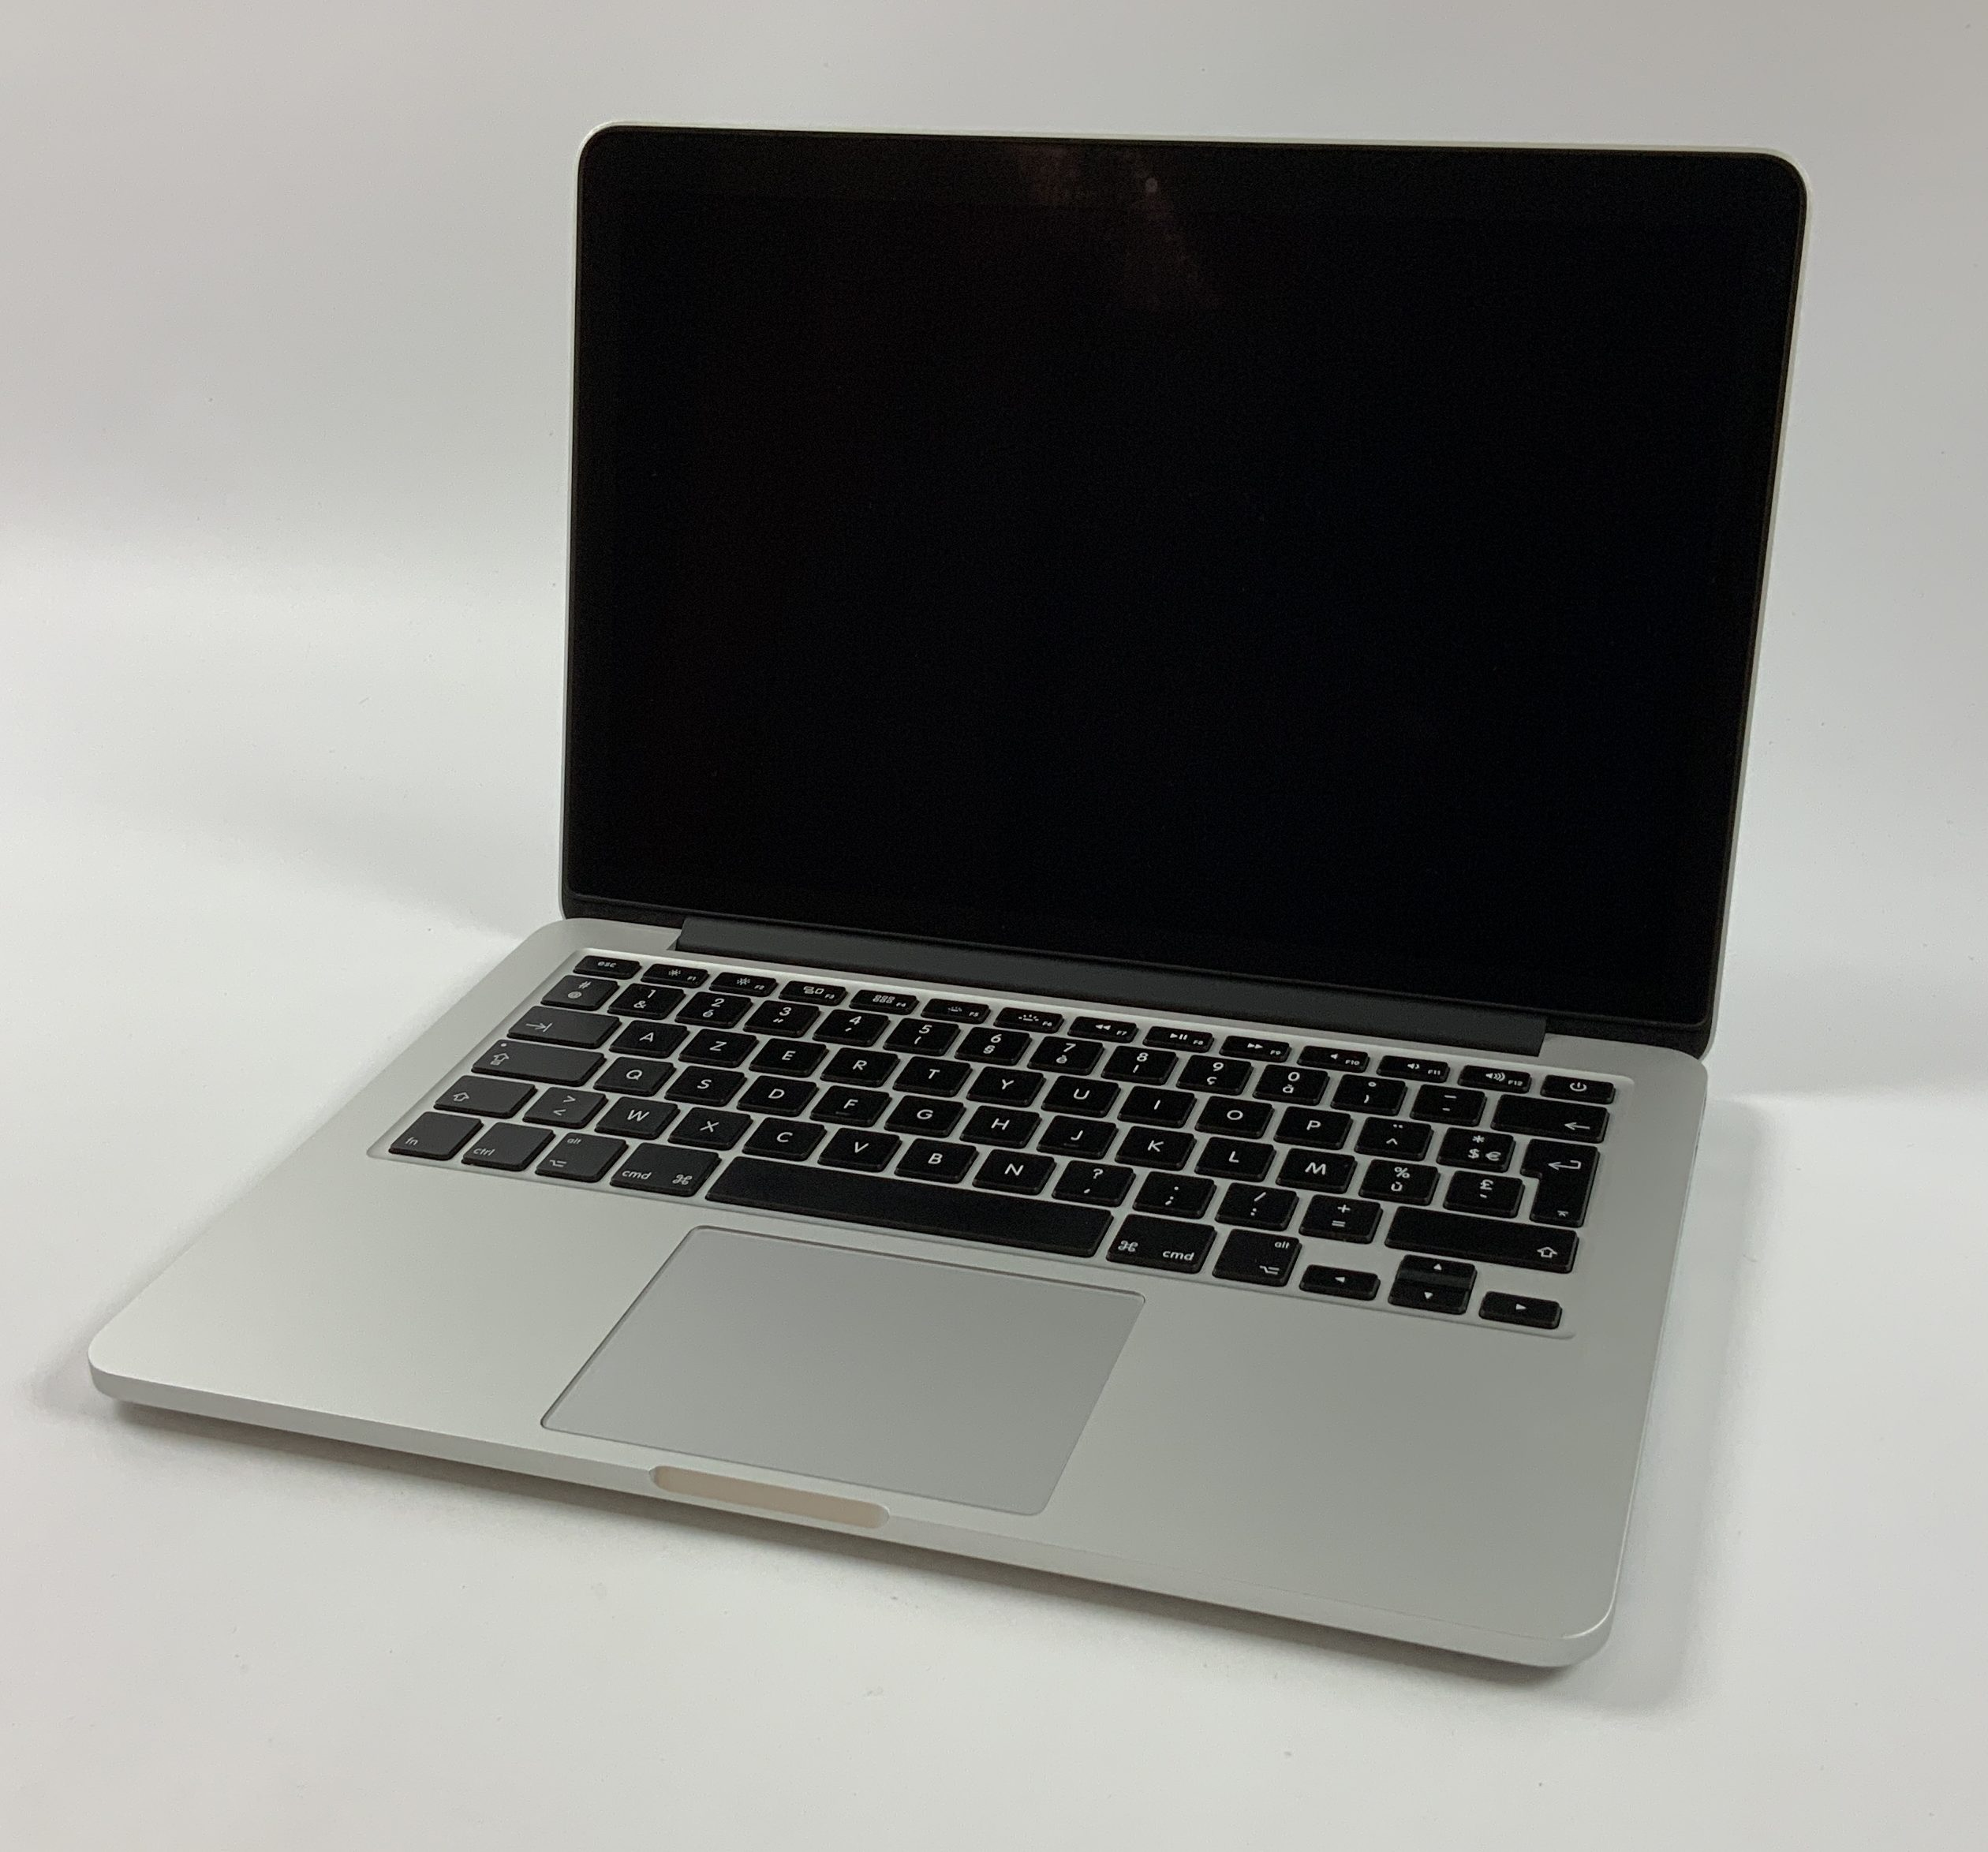 "MacBook Pro Retina 13"" Early 2015 (Intel Core i5 2.7 GHz 8 GB RAM 256 GB SSD), Intel Core i5 2.7 GHz, 8 GB RAM, 256 GB SSD, image 1"